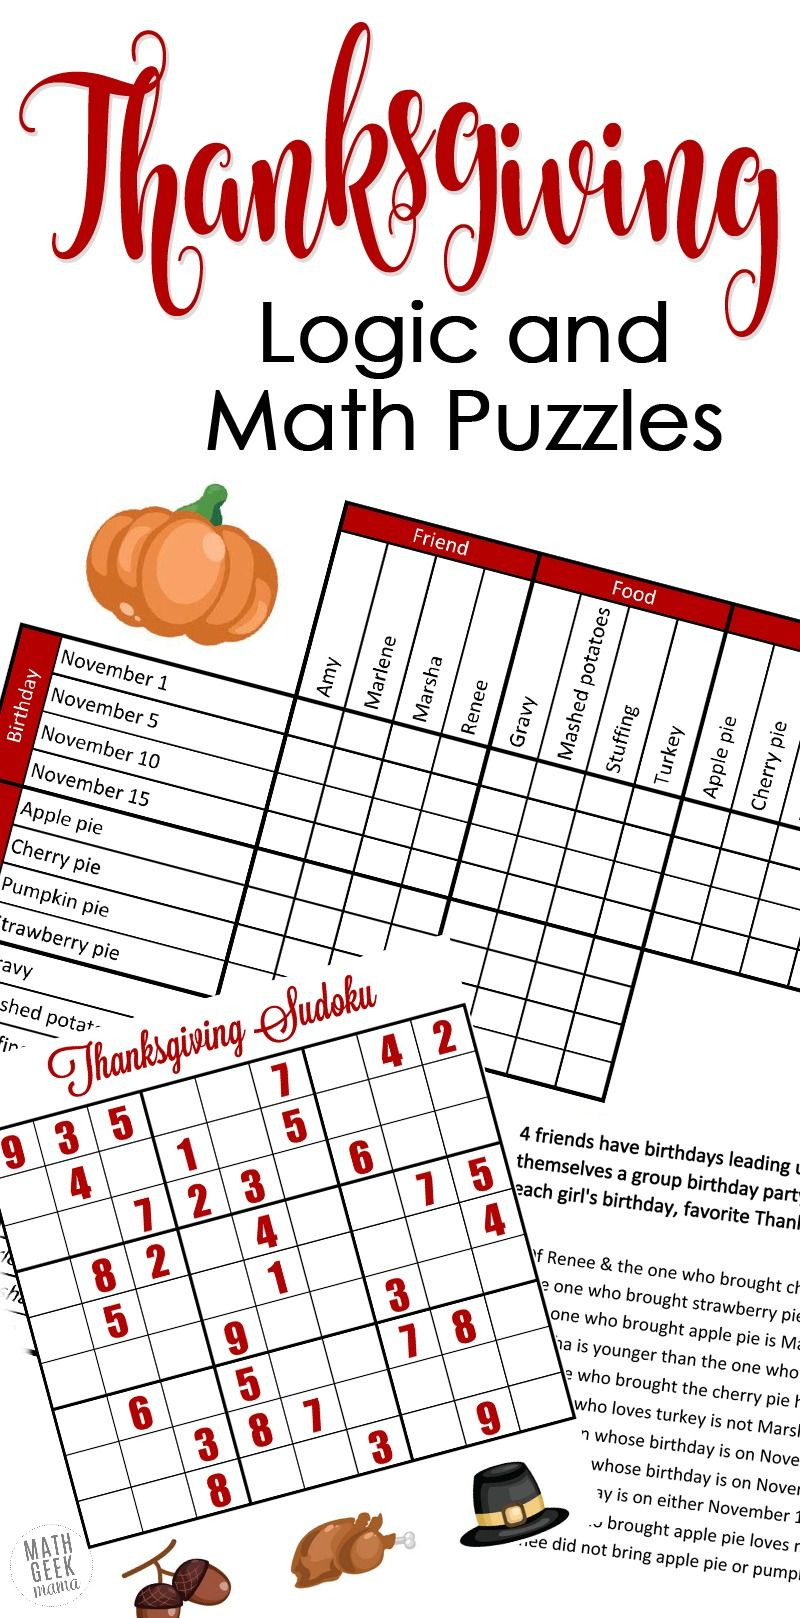 6th Grade Math Puzzles Pdf Free Fun Thanksgiving Math Puzzles for Older Kids